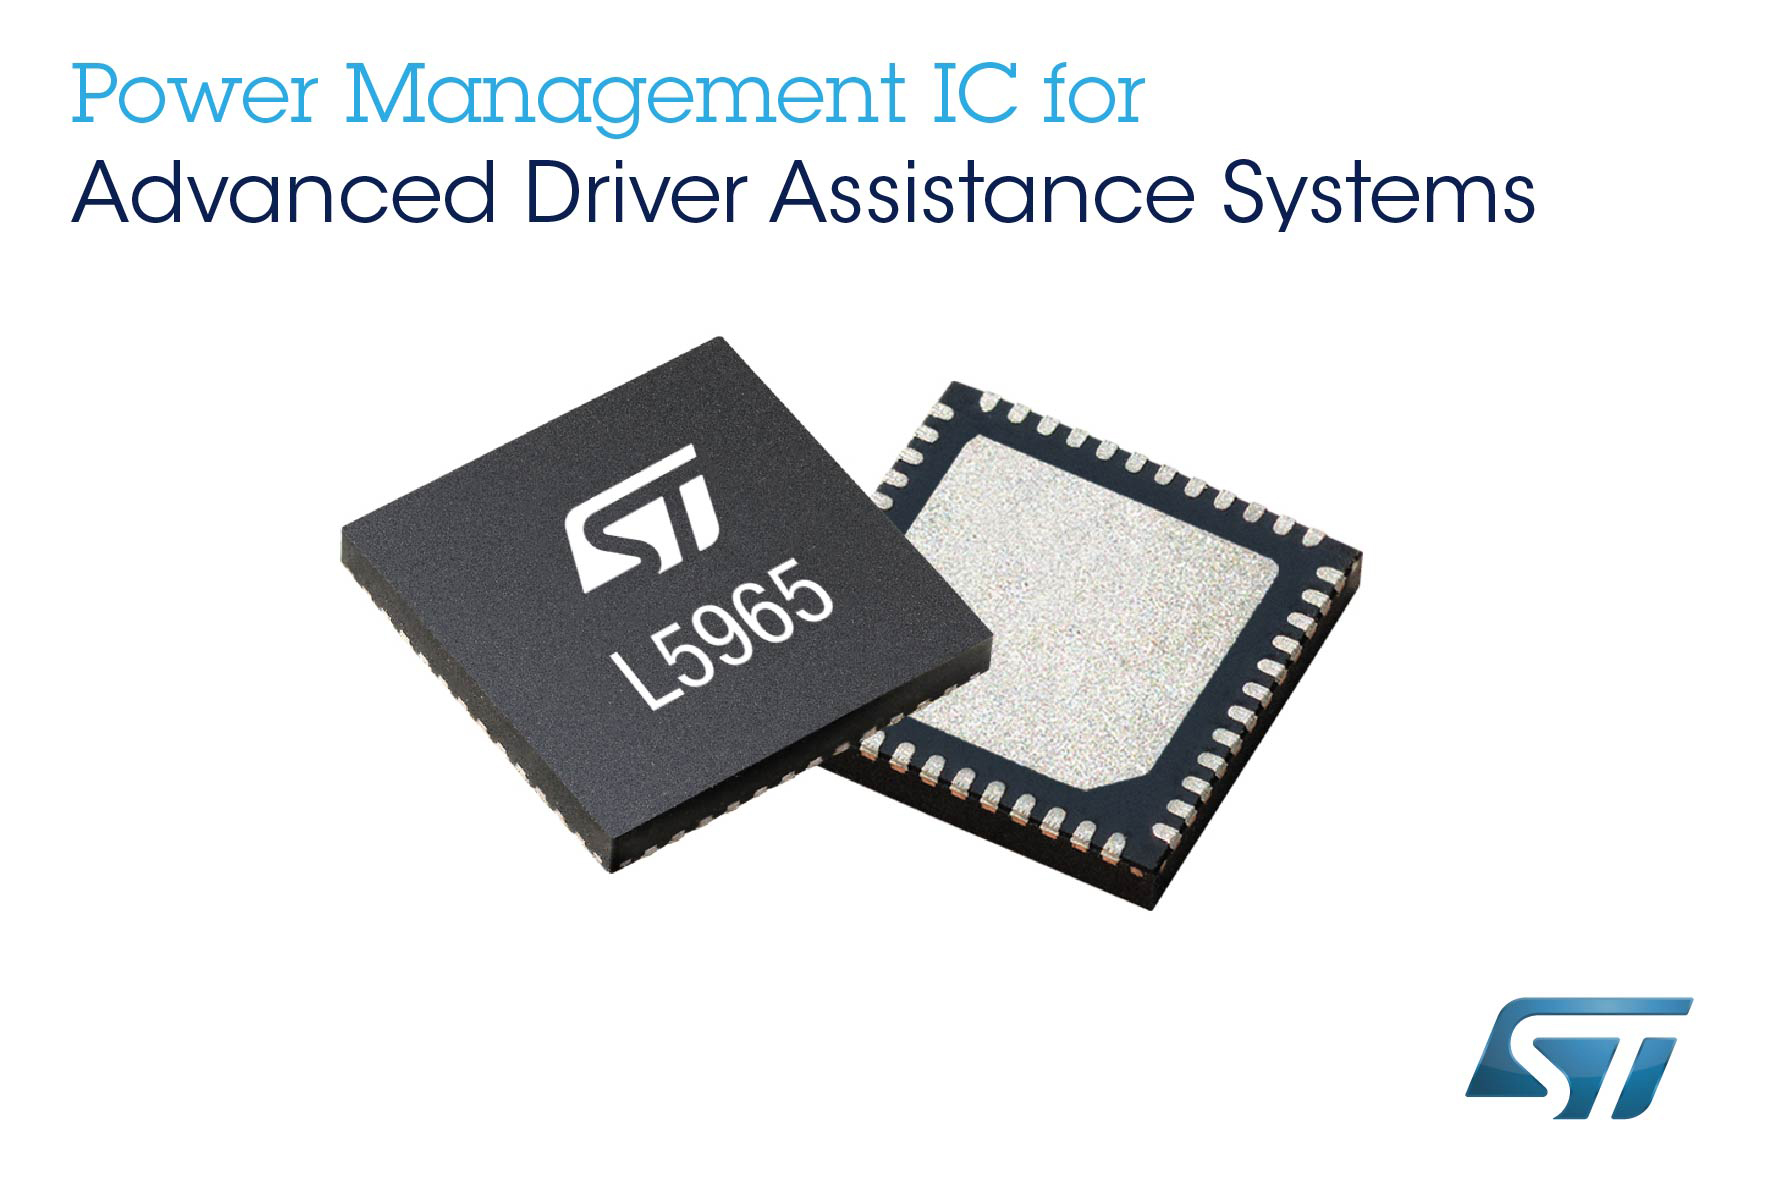 STMicroelectronics' Programmable Power-Management Device Saves Space and Increases Reliability in Advanced Driver-Assistance Systems